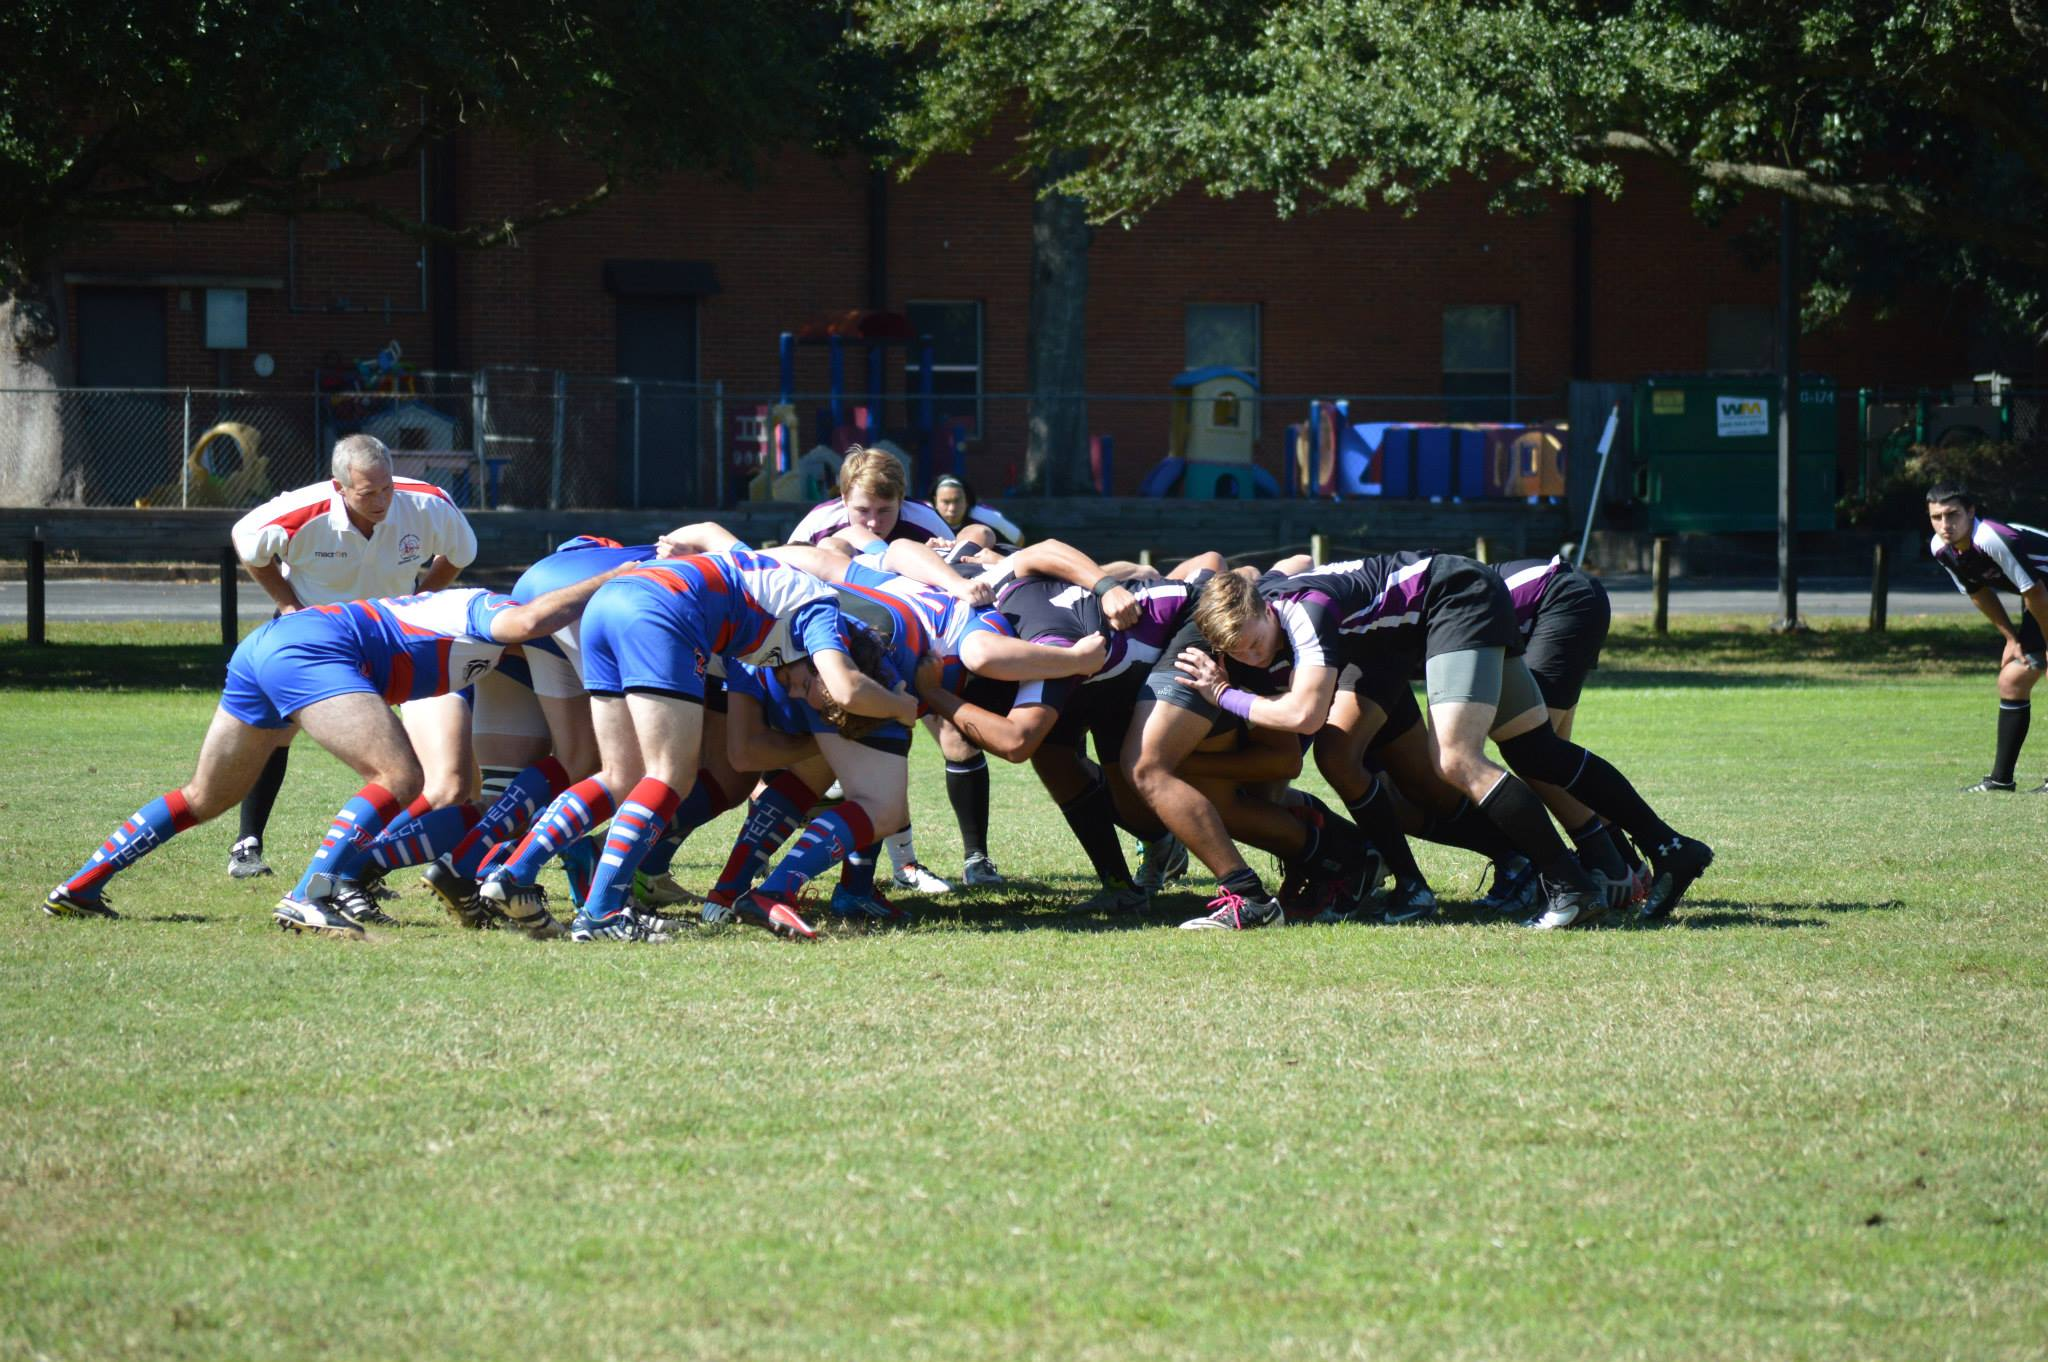 Pictures by Springhill Rugby Club